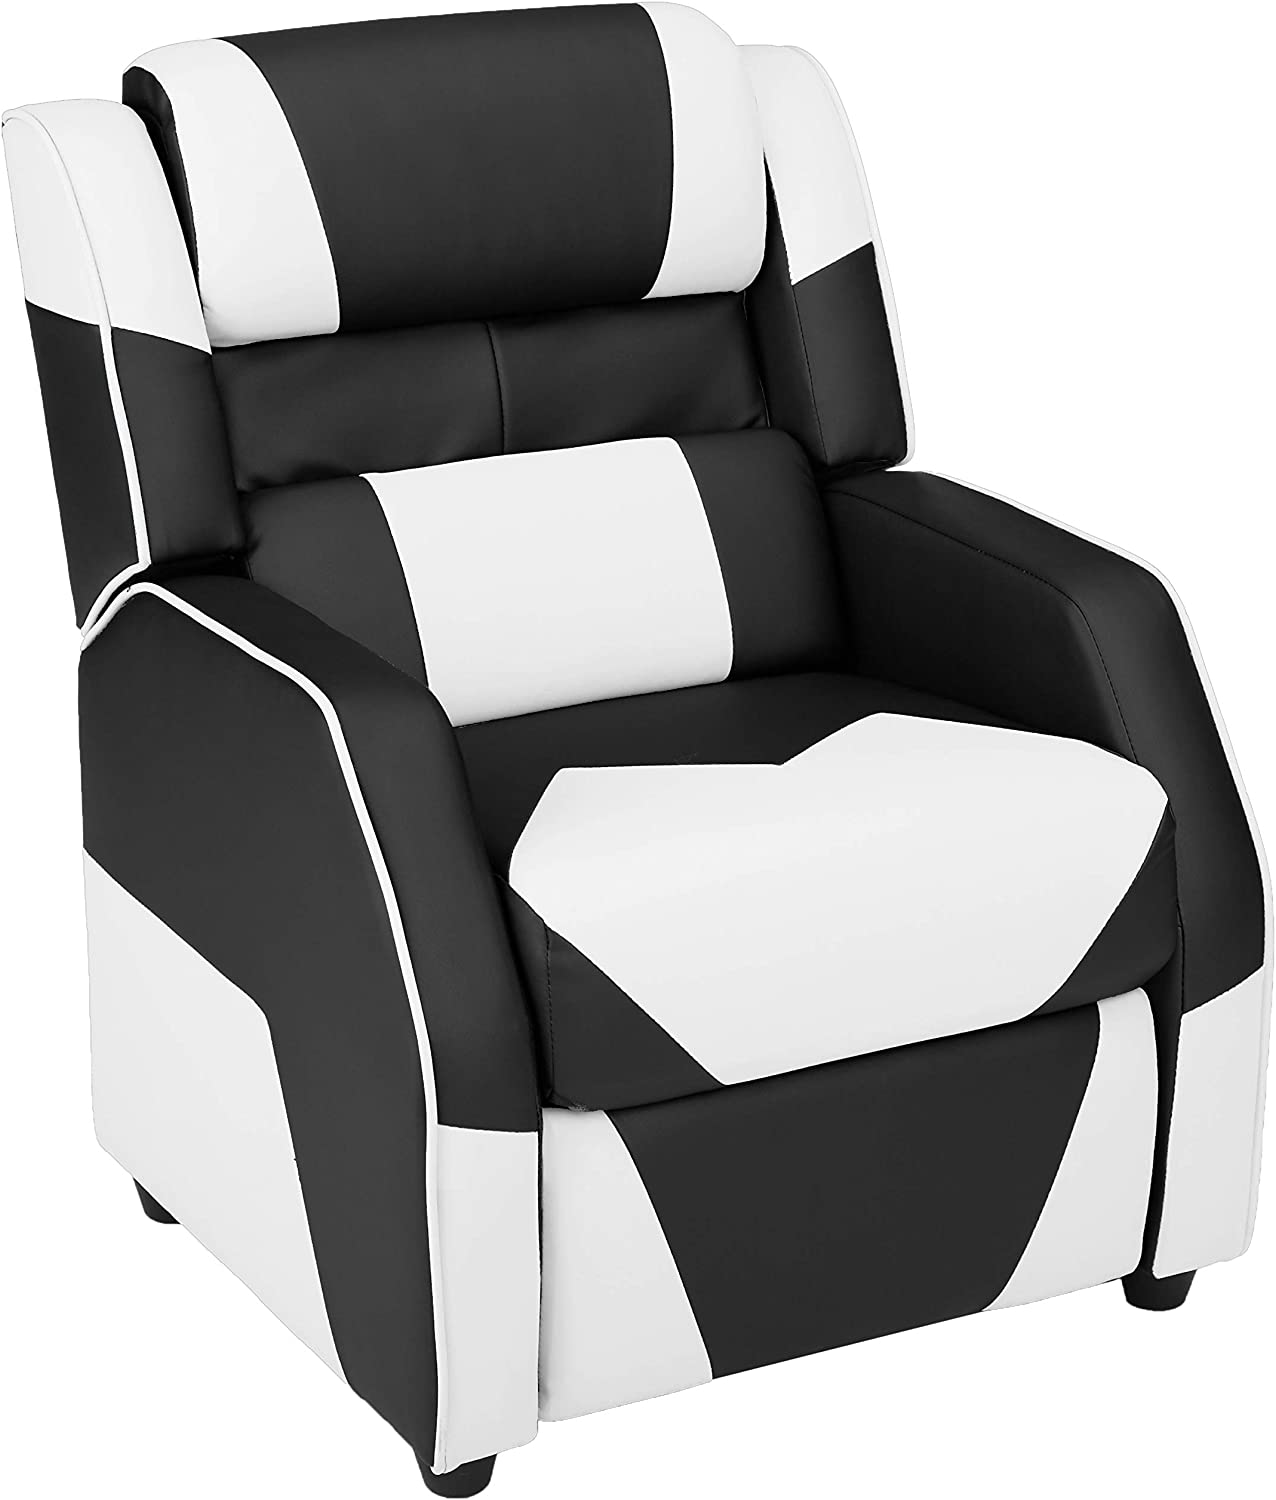 10 Best Gaming Chairs For Kids (Great For Posture)